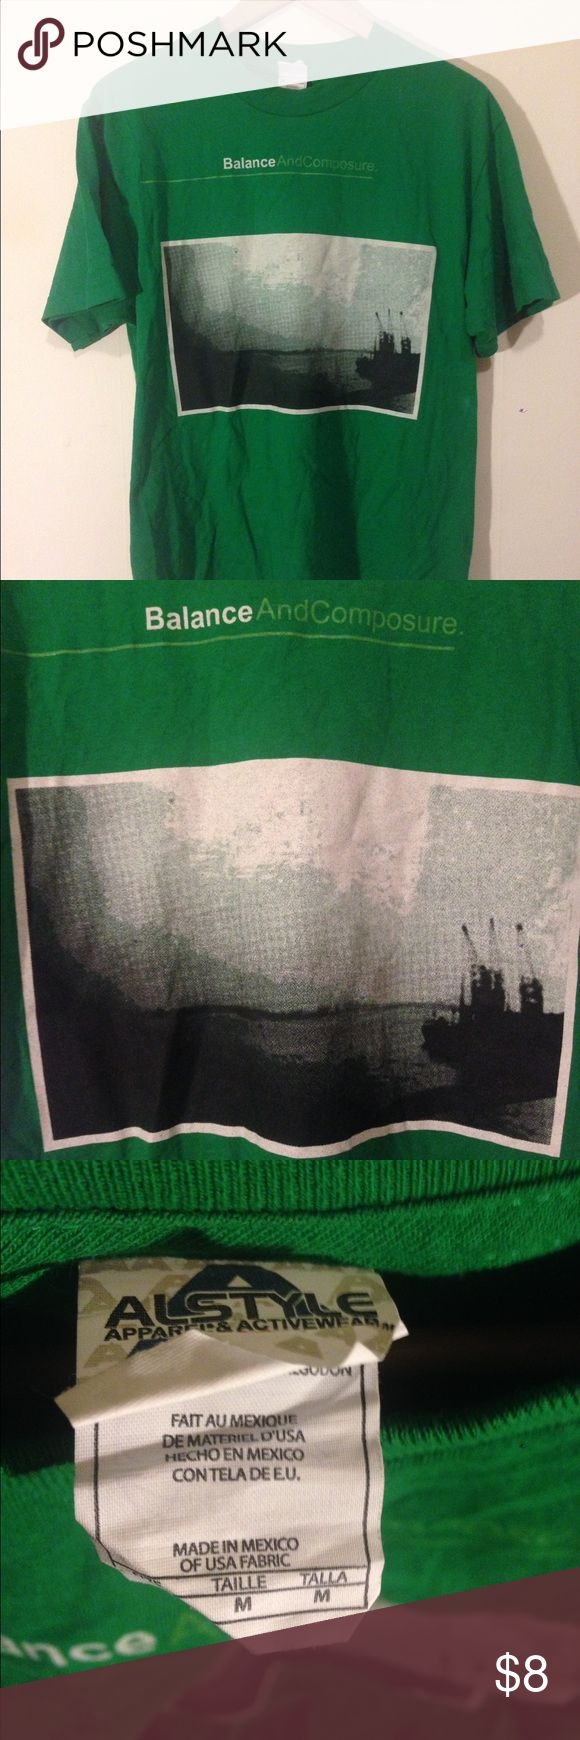 Balance and Composure Mineral tee Green Balance & Composure Mineral t-shirt. Pretty sure this was never worn. Alstyle brand shirt with a black and white water scene printed on it.  Band tee Shirts Tees - Short Sleeve